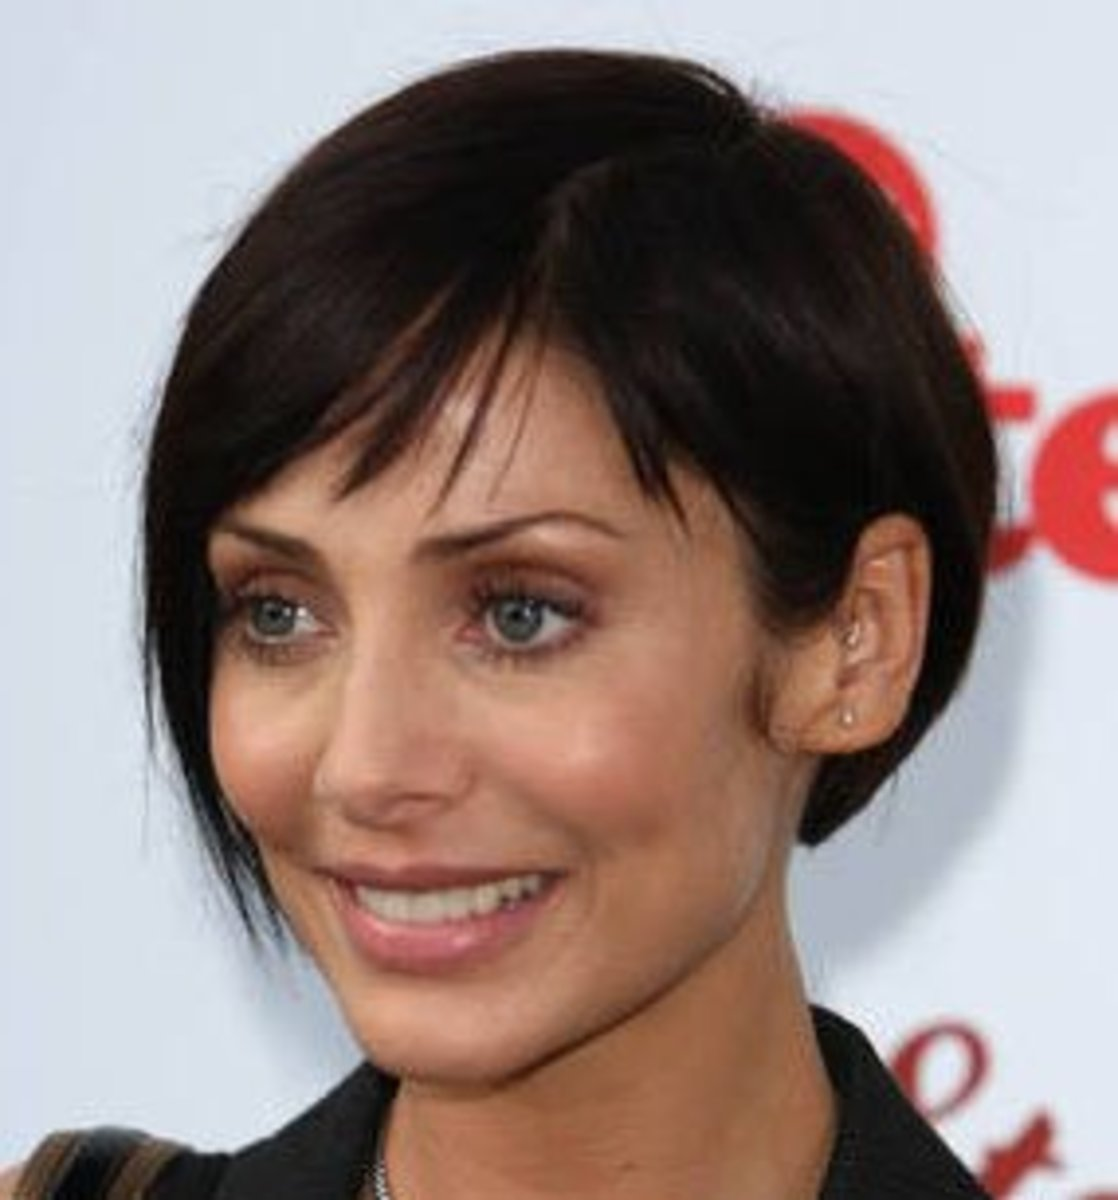 Short layered hairstyle with side fringe.